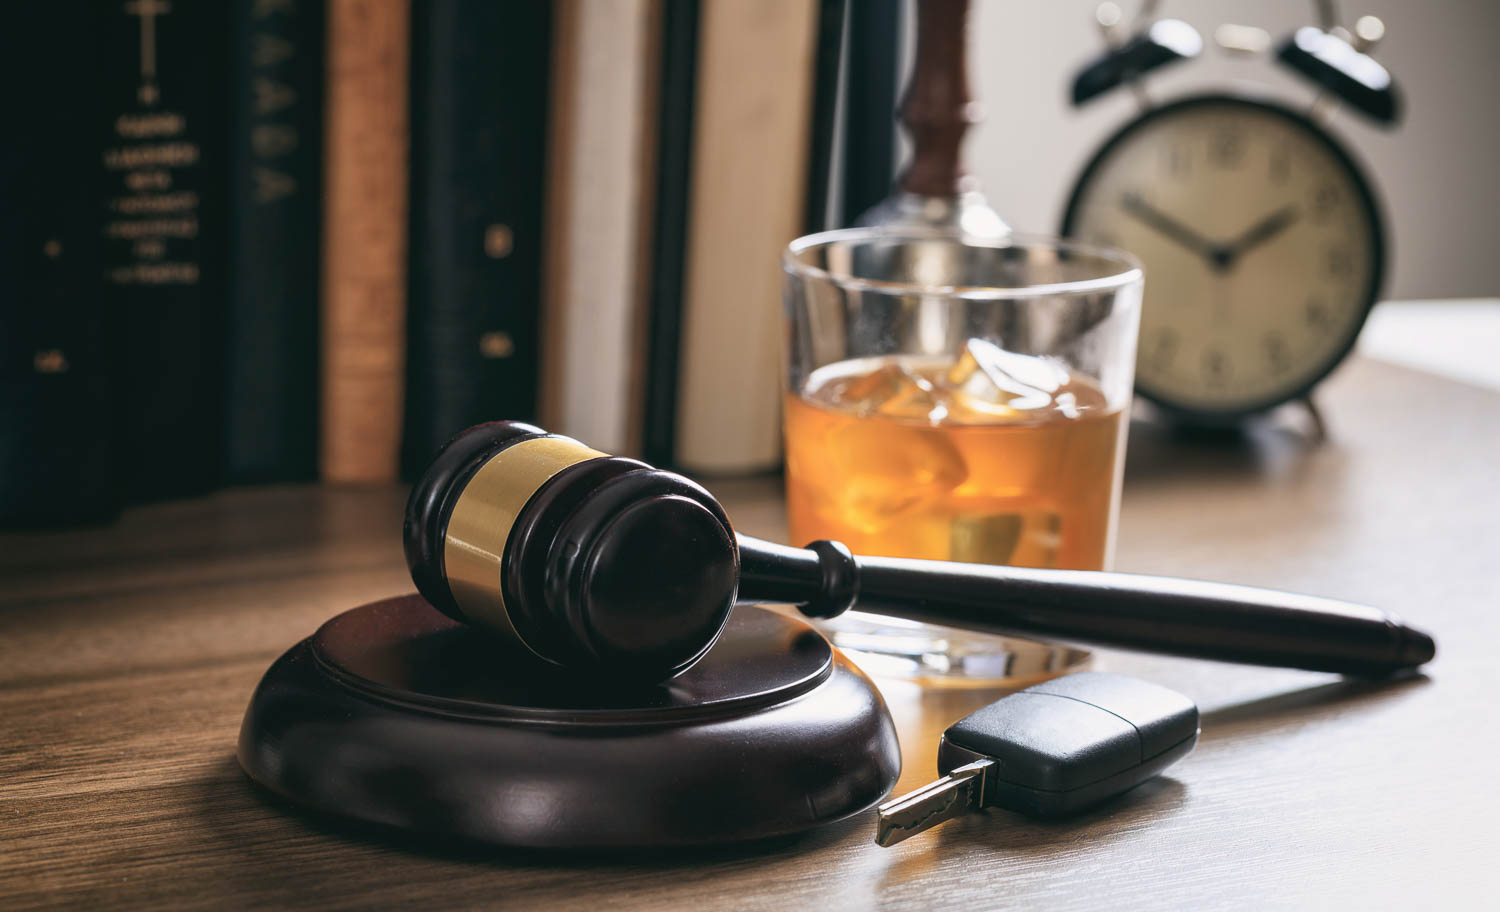 DUI law in Florida has harsh penalties for DUI charges in Fort Lauderdal